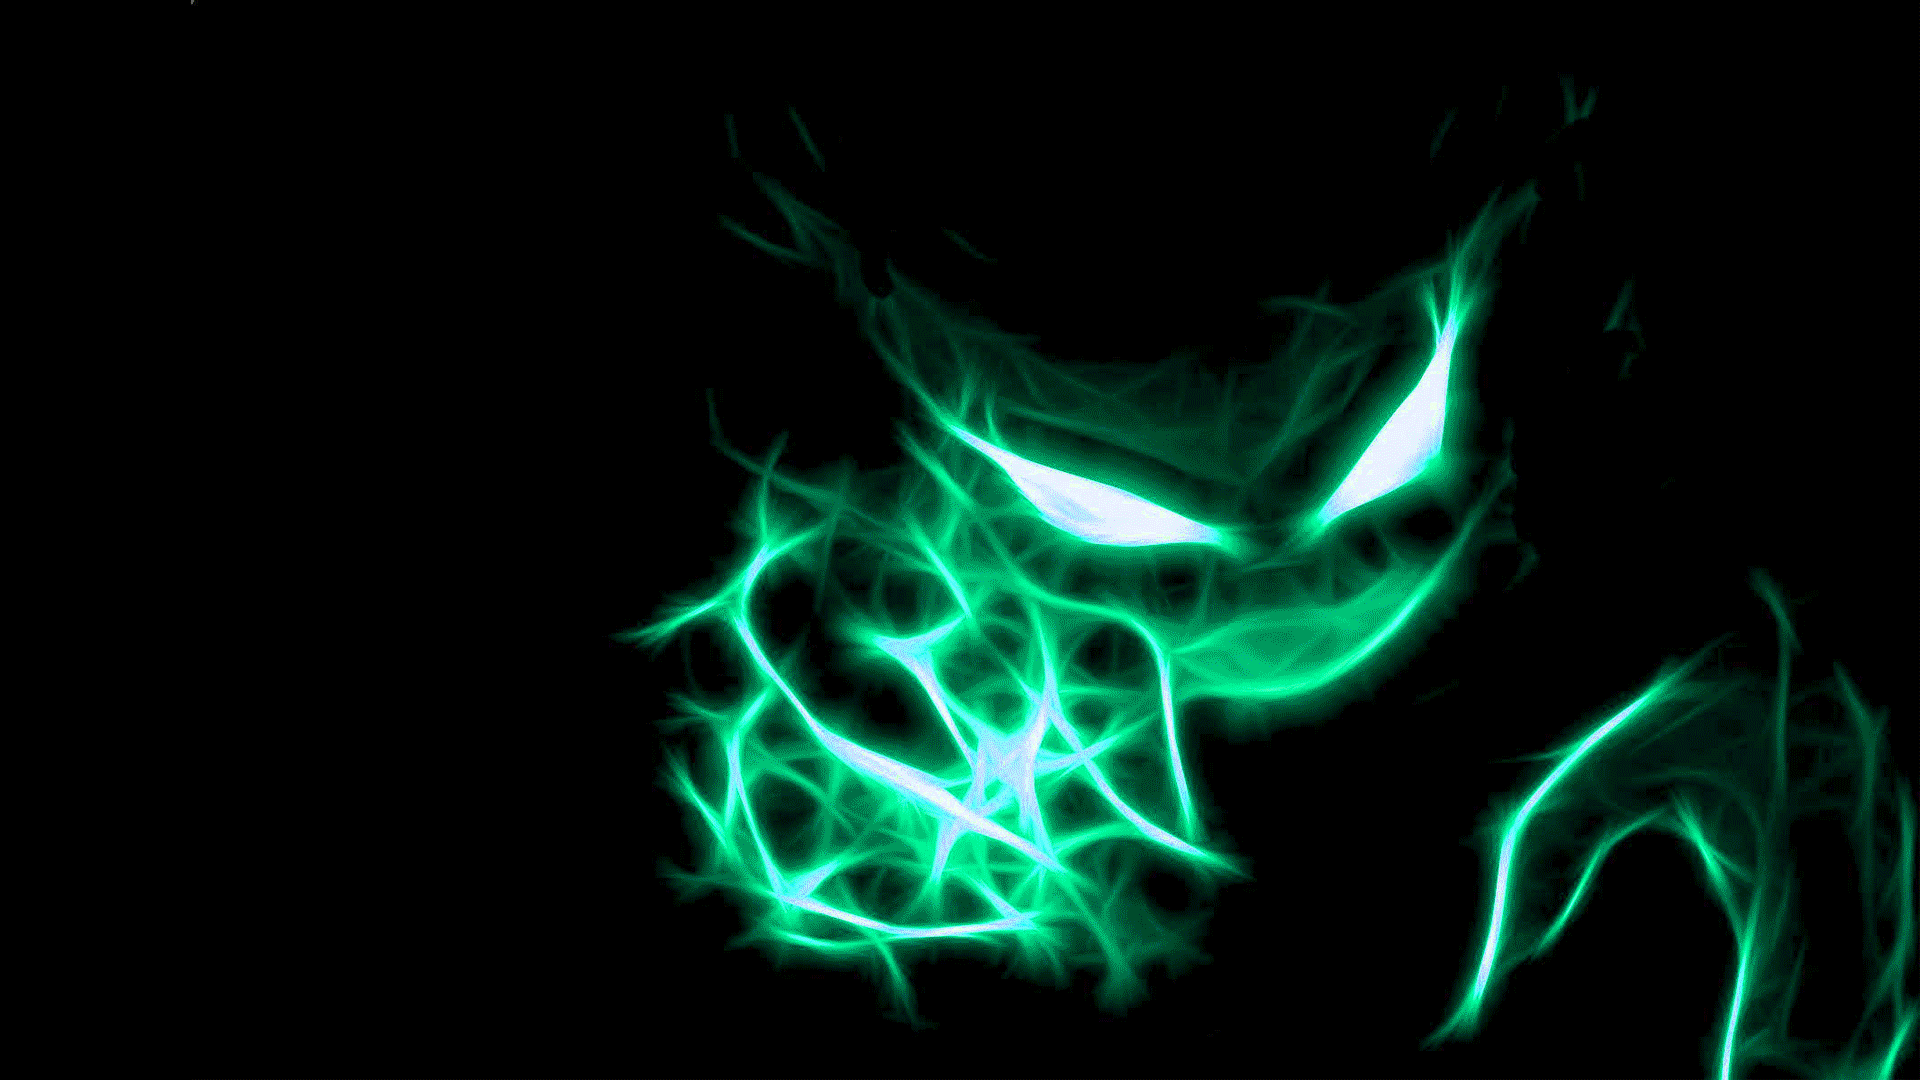 34 Haunter (Pokémon) HD Wallpapers | Background Images - Wallpaper ...